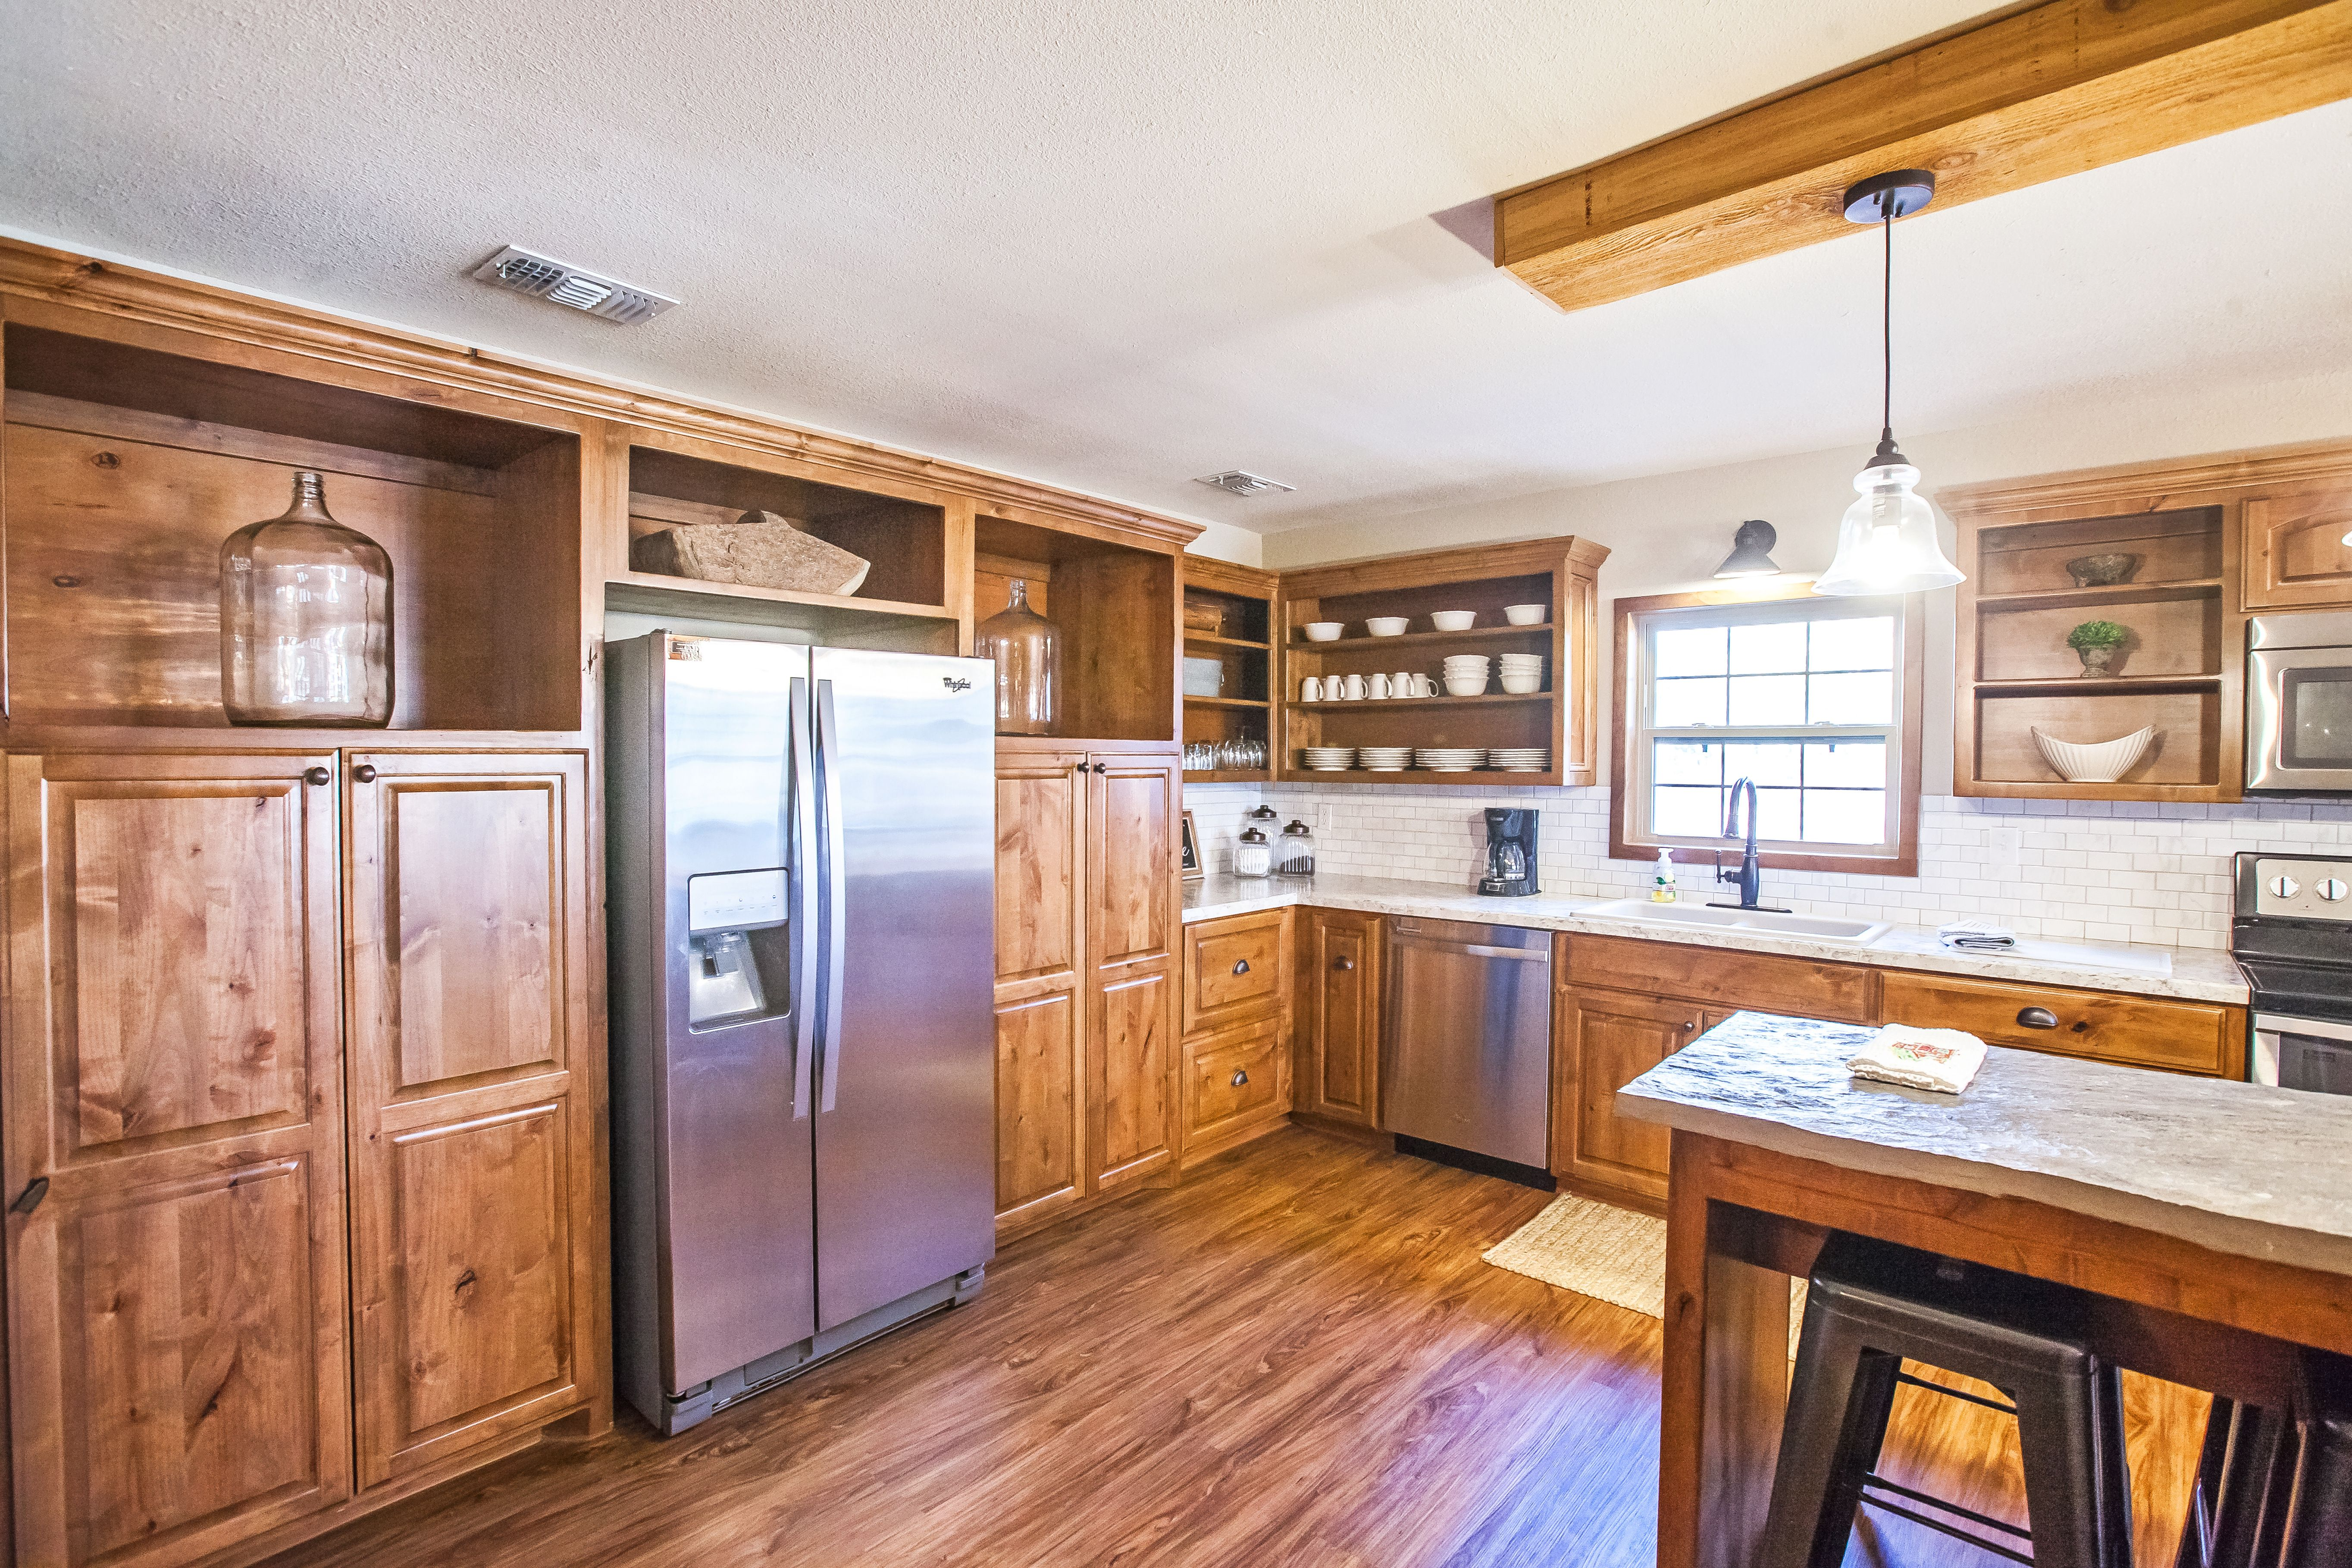 Beautiful kitchen in our Farmhouse Cabin vacation rental